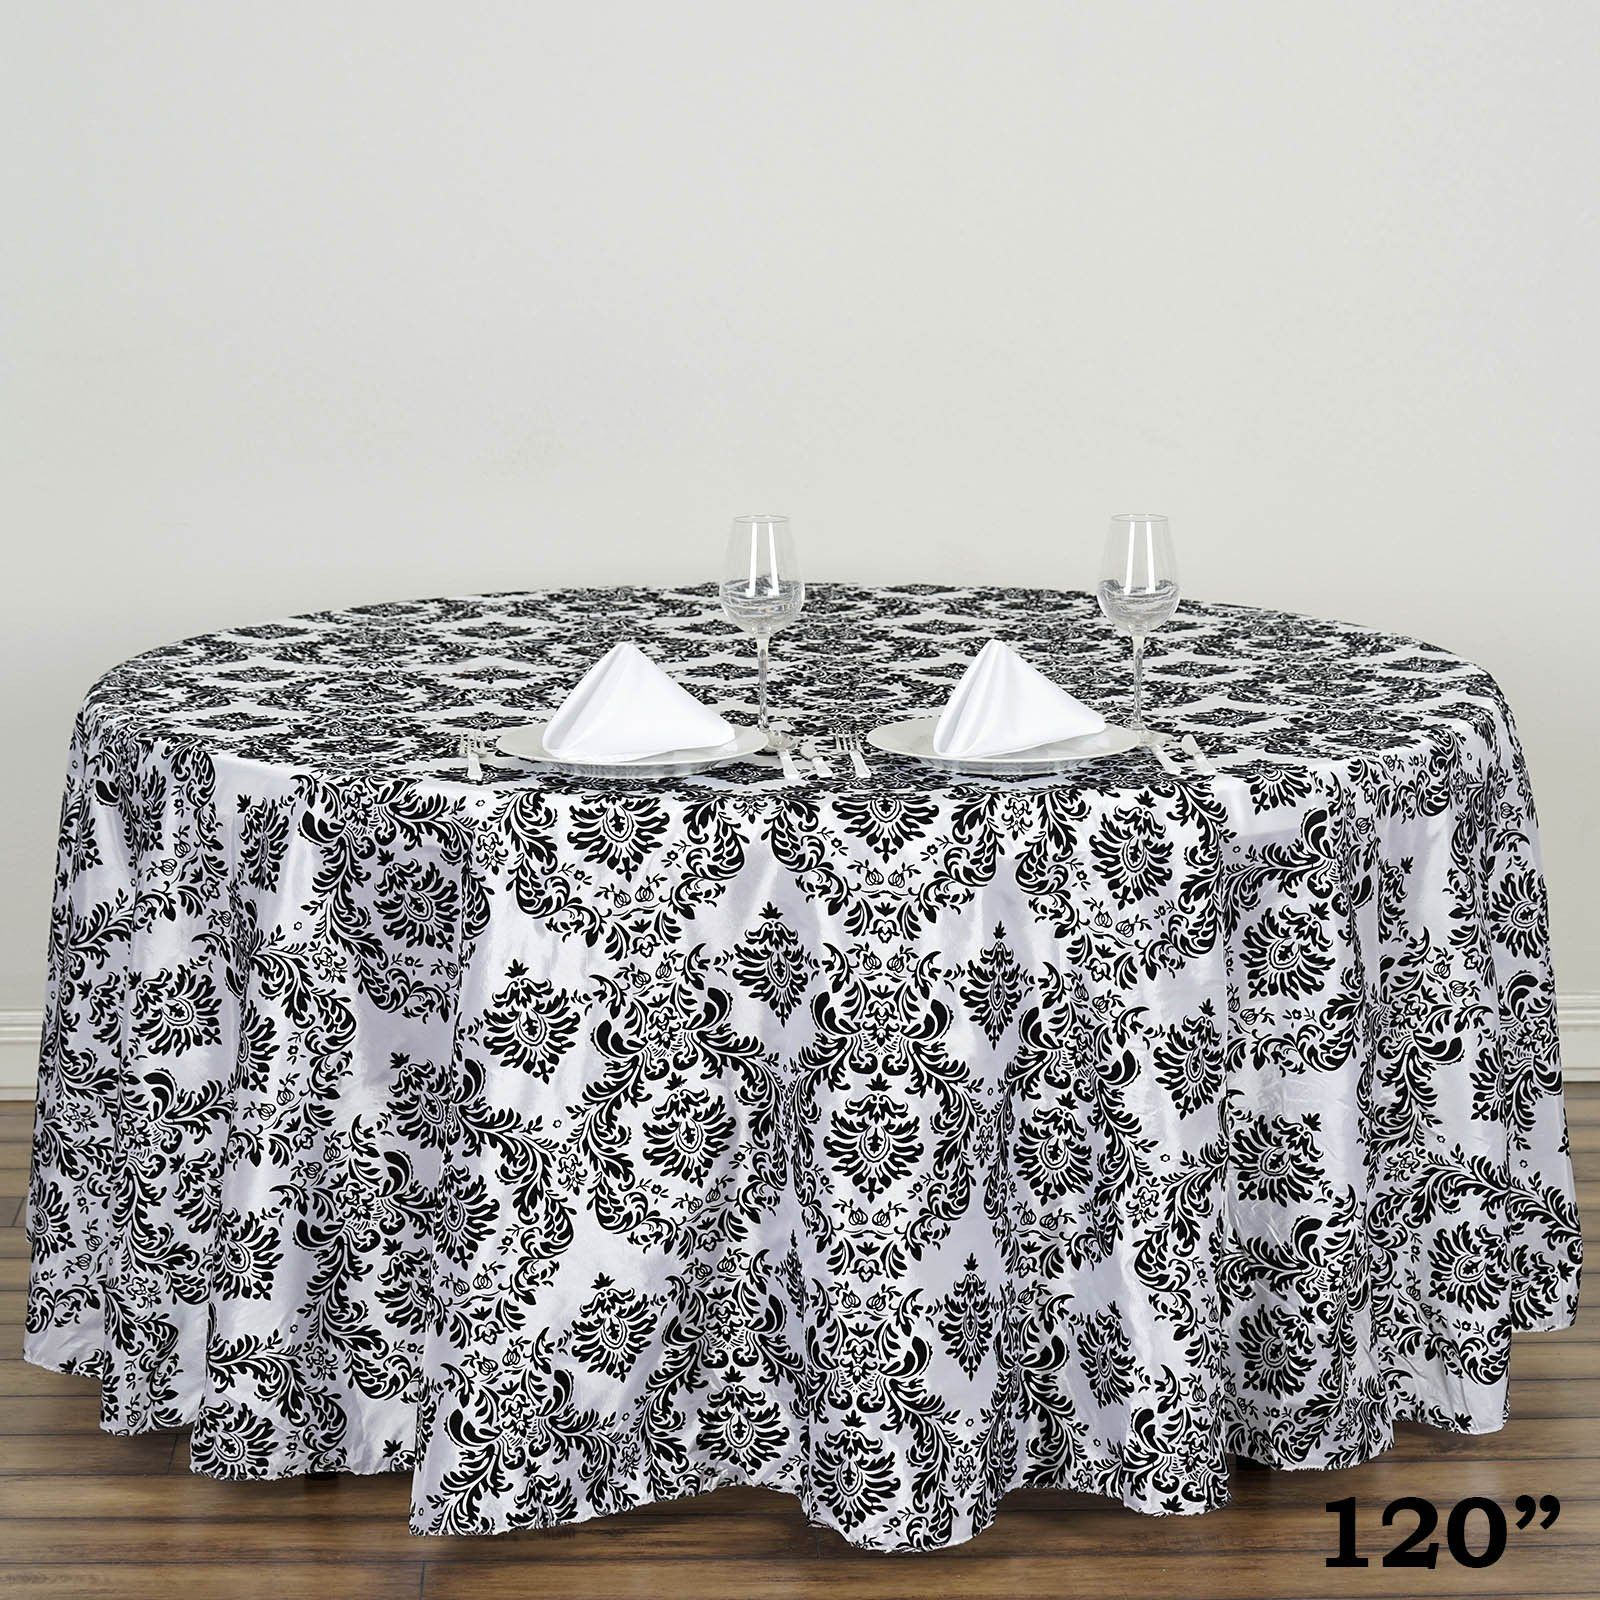 round flocking damask tablecloths tablecloth damasks accent table skirts lamps with black glass lamp outdoor side kmart entryway decor wedding linens whole farm style end tables